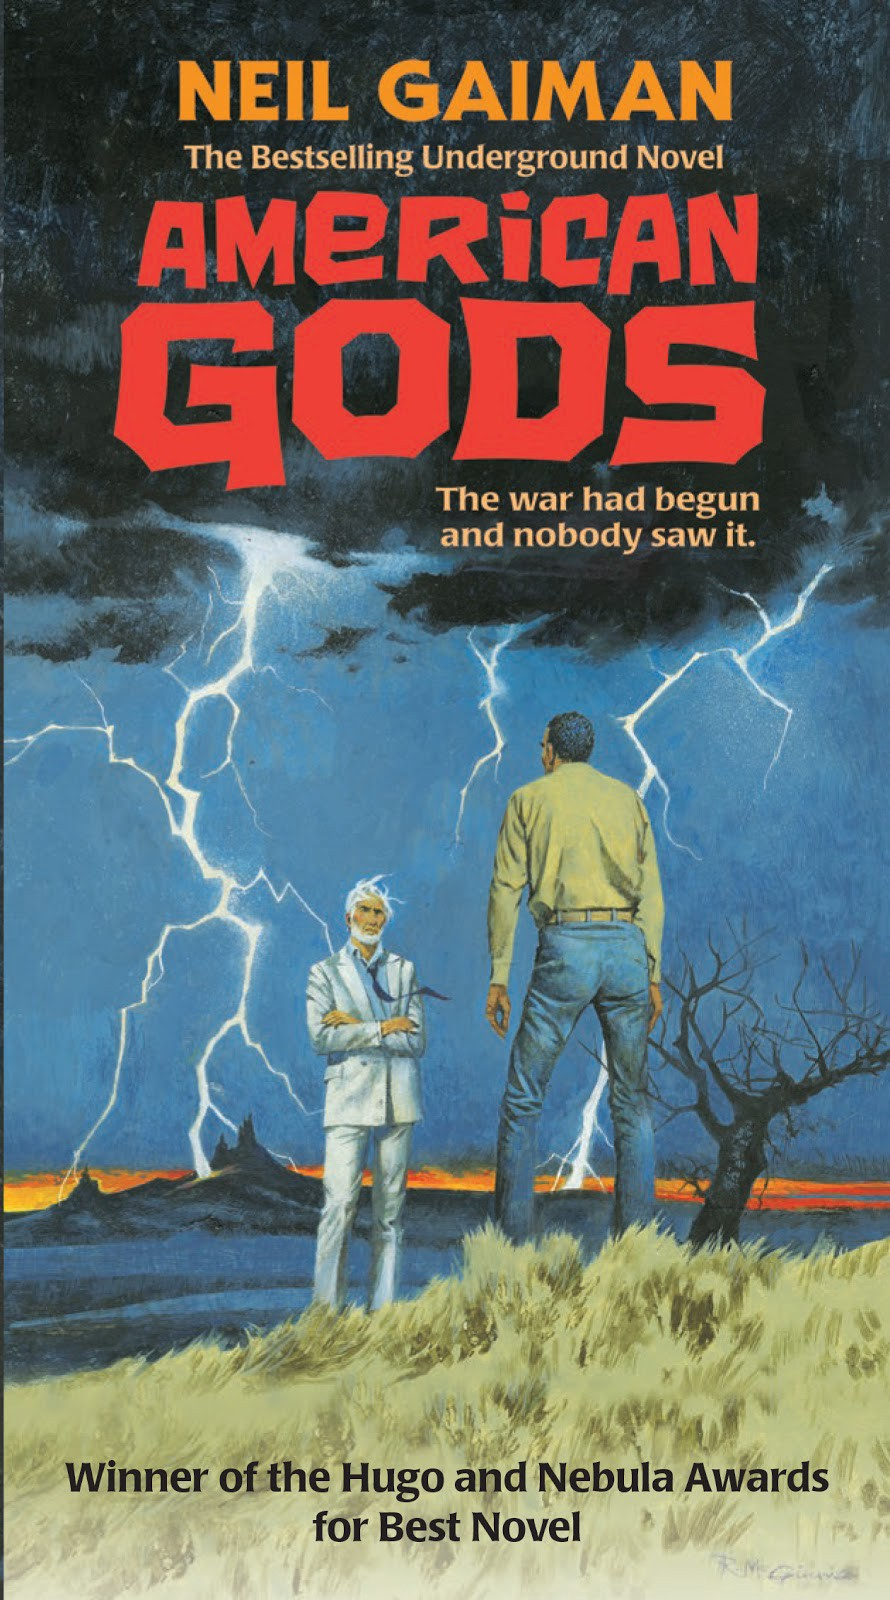 Book Review: American Gods by Neil Gaiman - David Fish - Medium